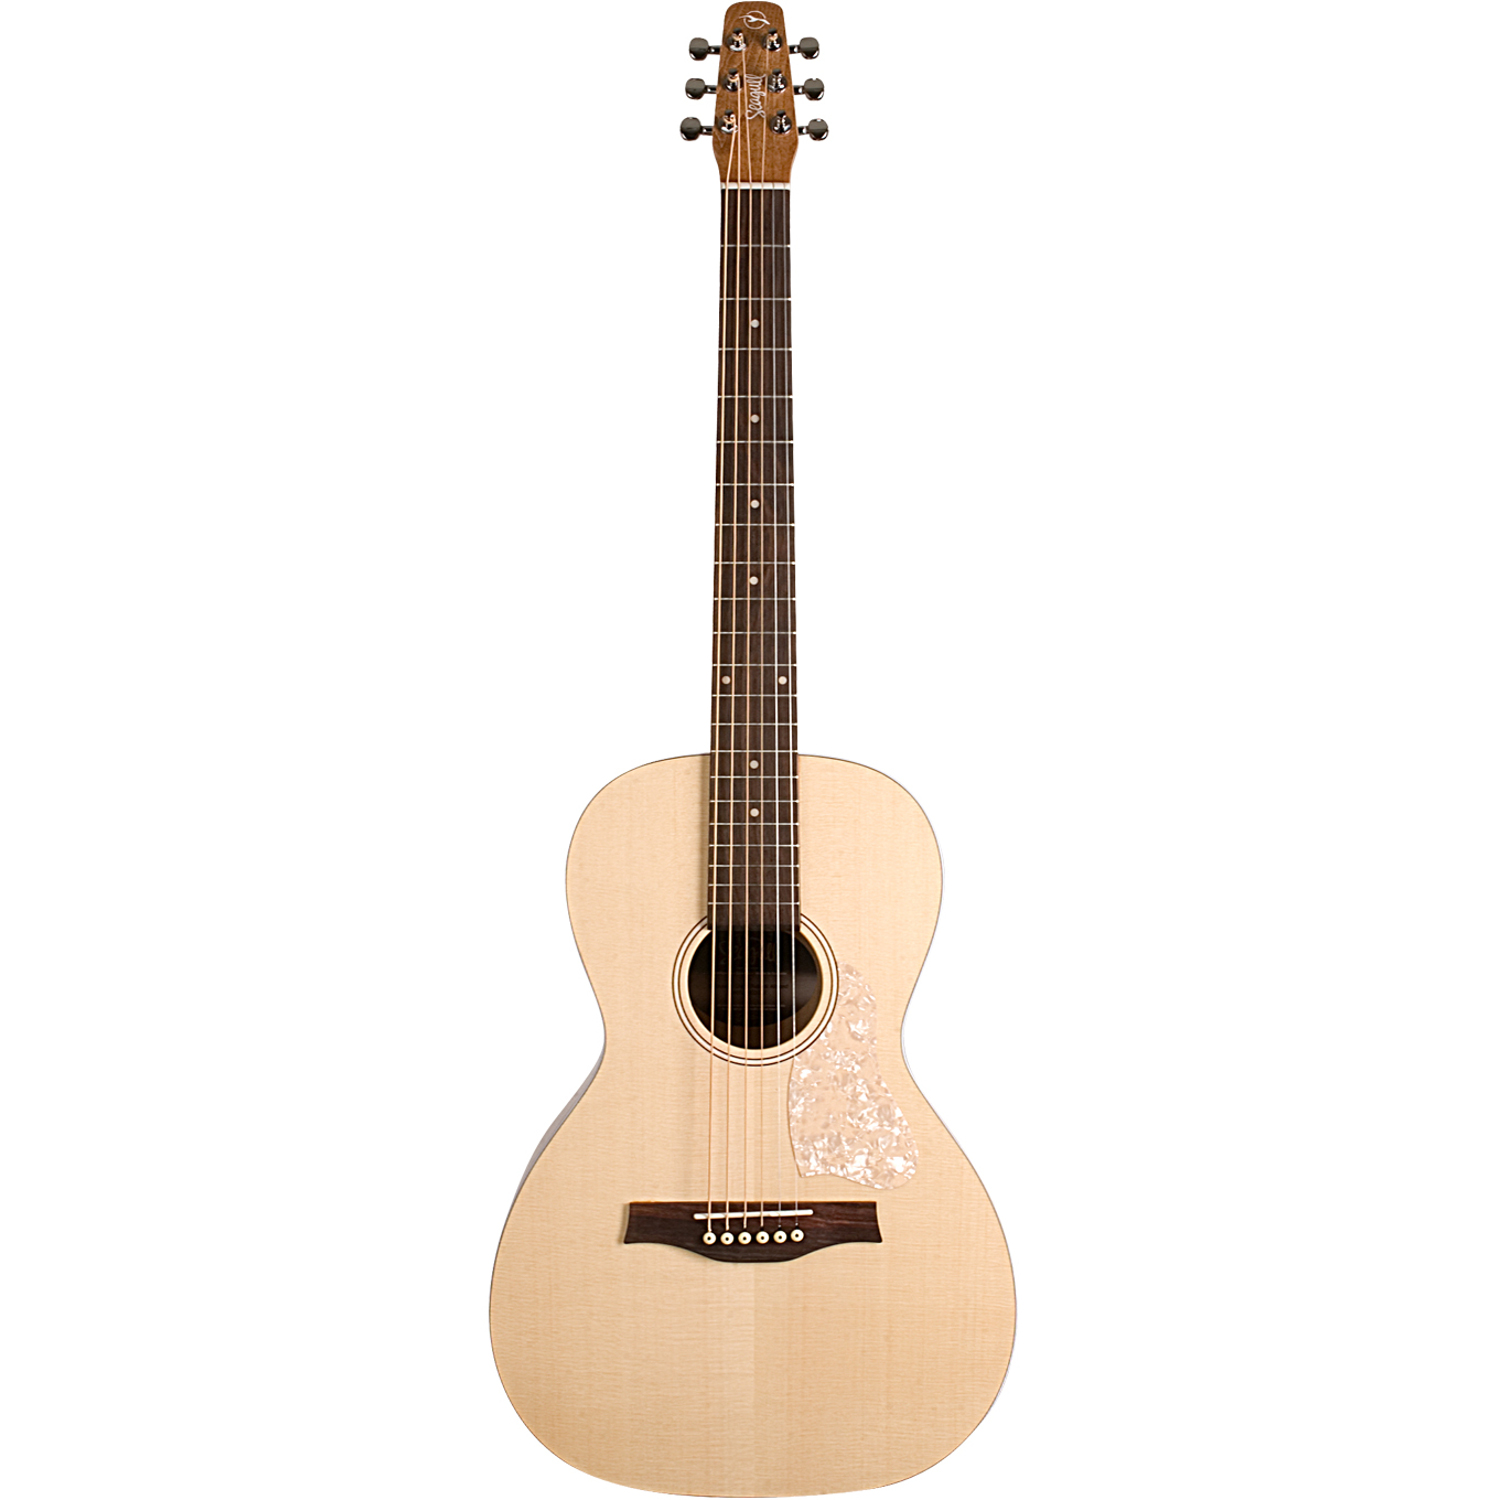 Seagull Entourage Grand Natural Almond acoustic steel string guitar